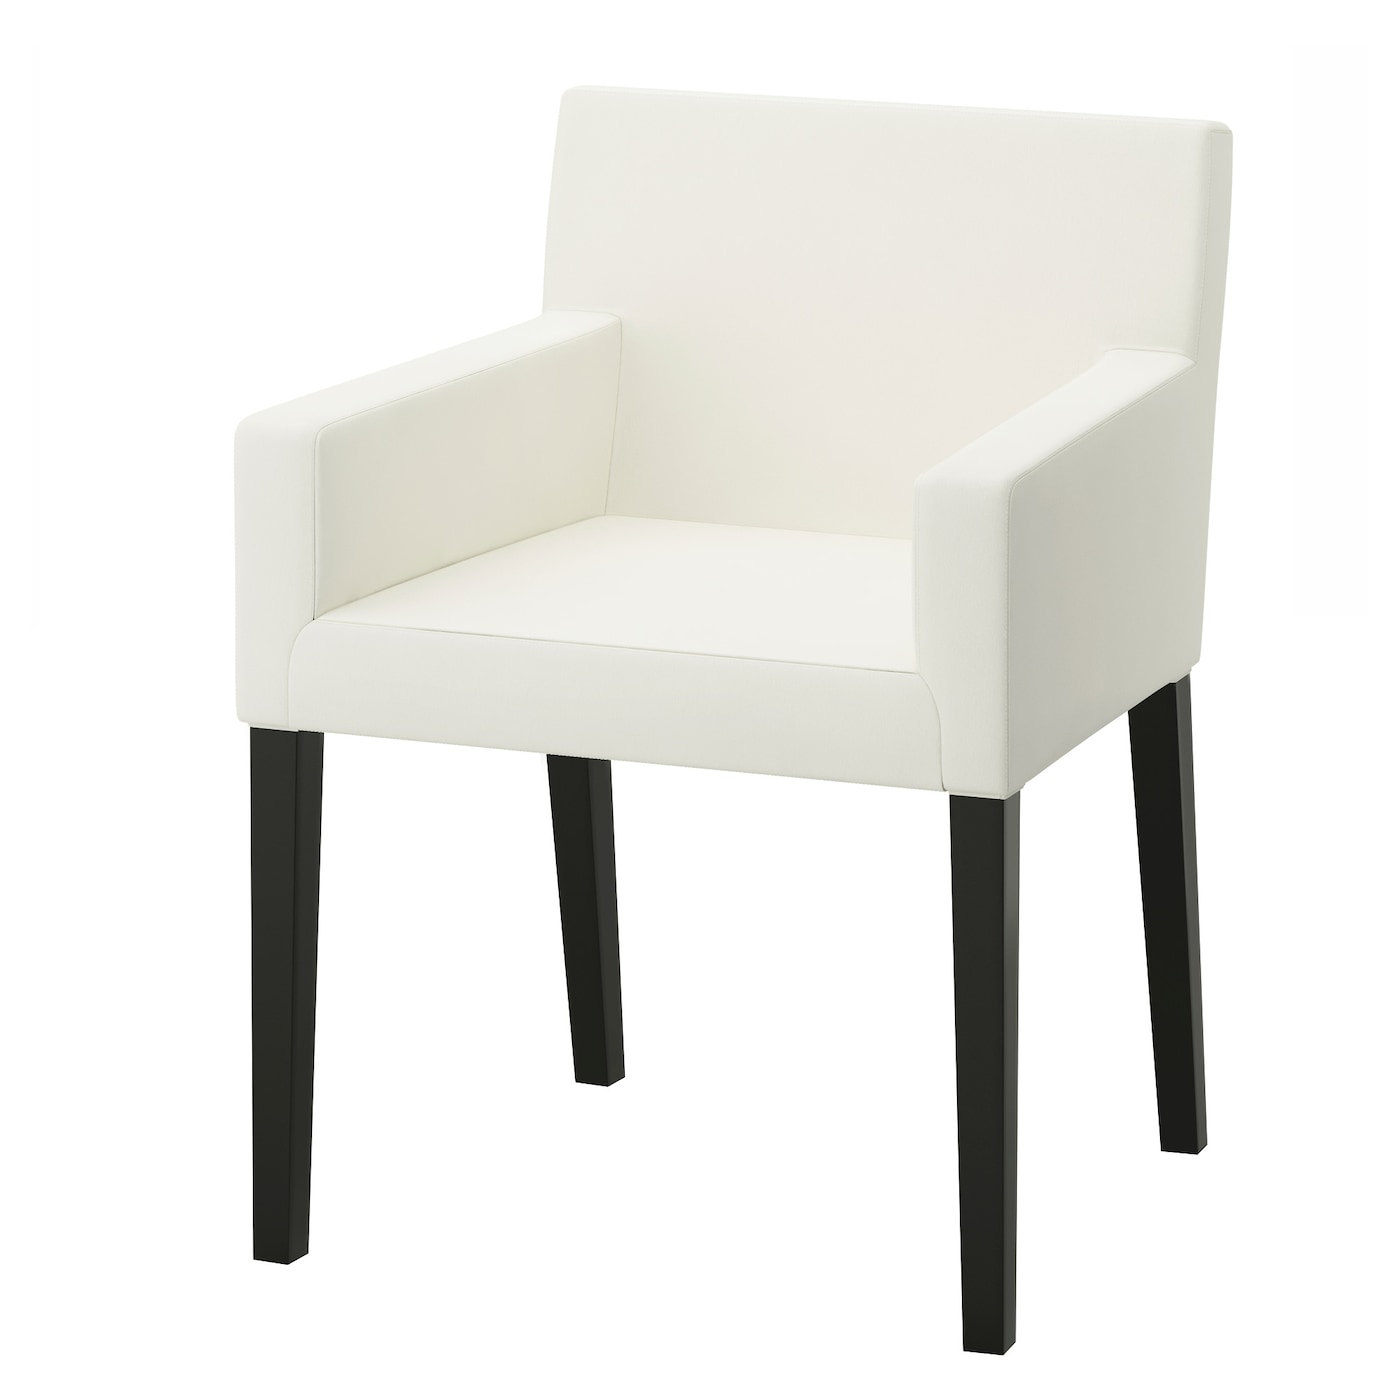 Nils chair with armrests black blekinge white ikea for Chaise salle a manger avec accoudoir